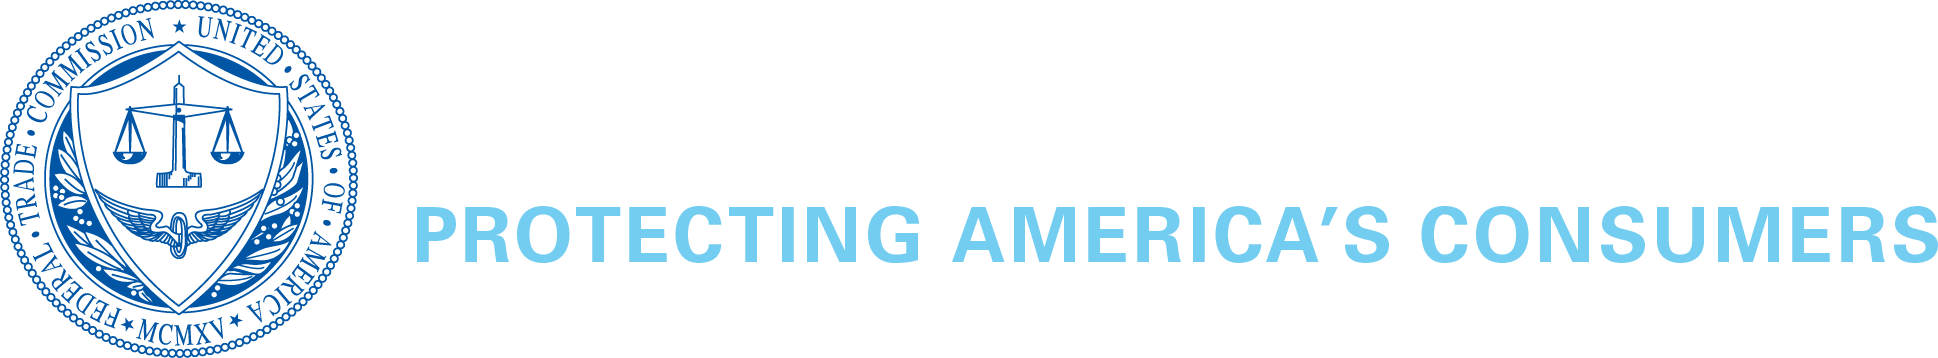 Ftc blogs federal trade commission - Us federal trade commission bureau of consumer protection ...